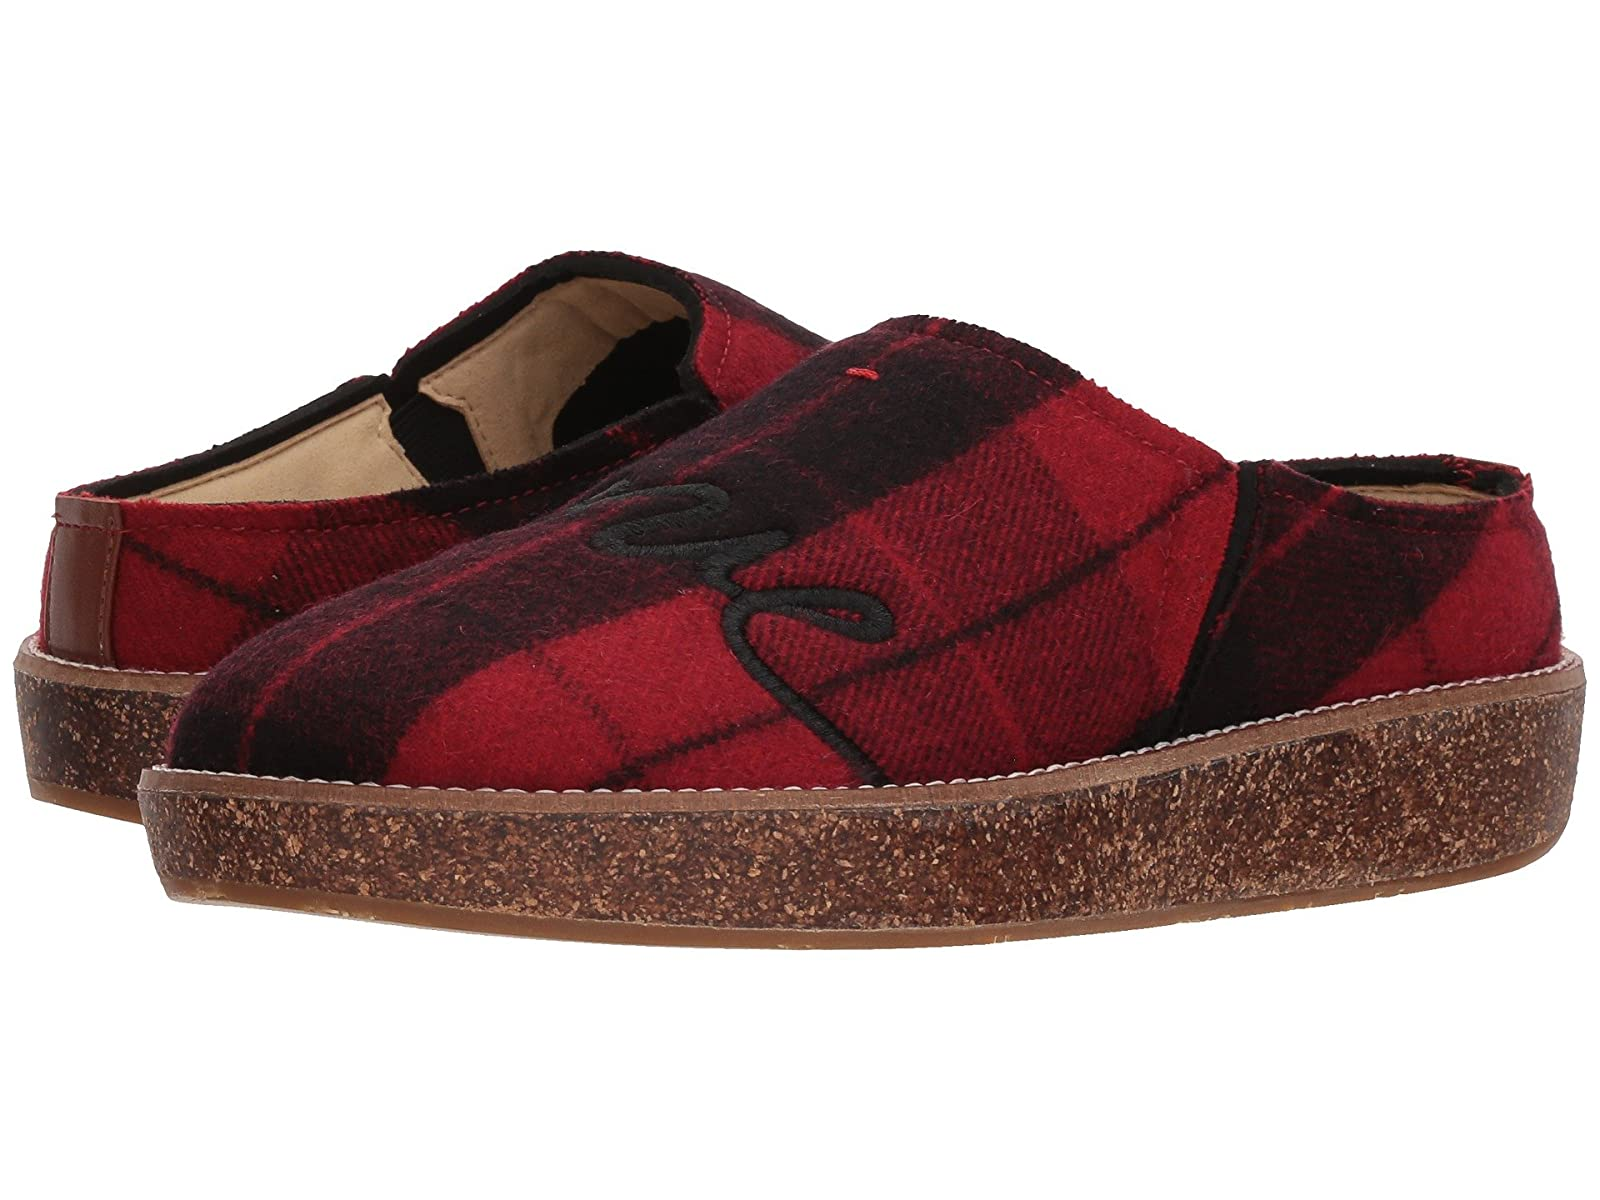 ED Ellen DeGeneres Tillie SlipperCheap and distinctive eye-catching shoes